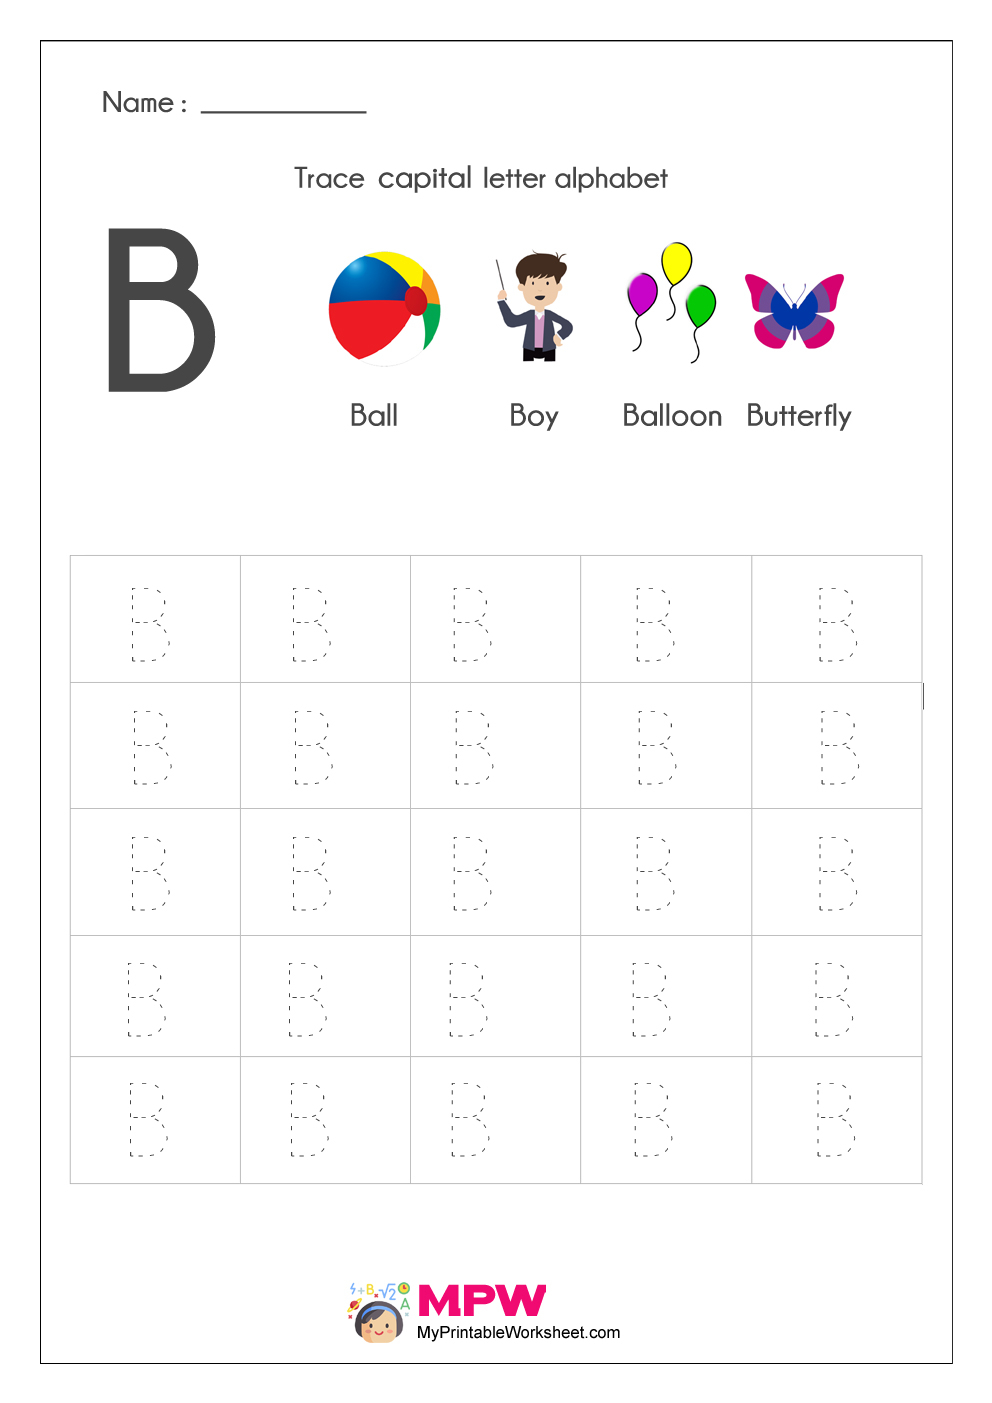 Alphabet Tracing Worksheets, Printable English Capital